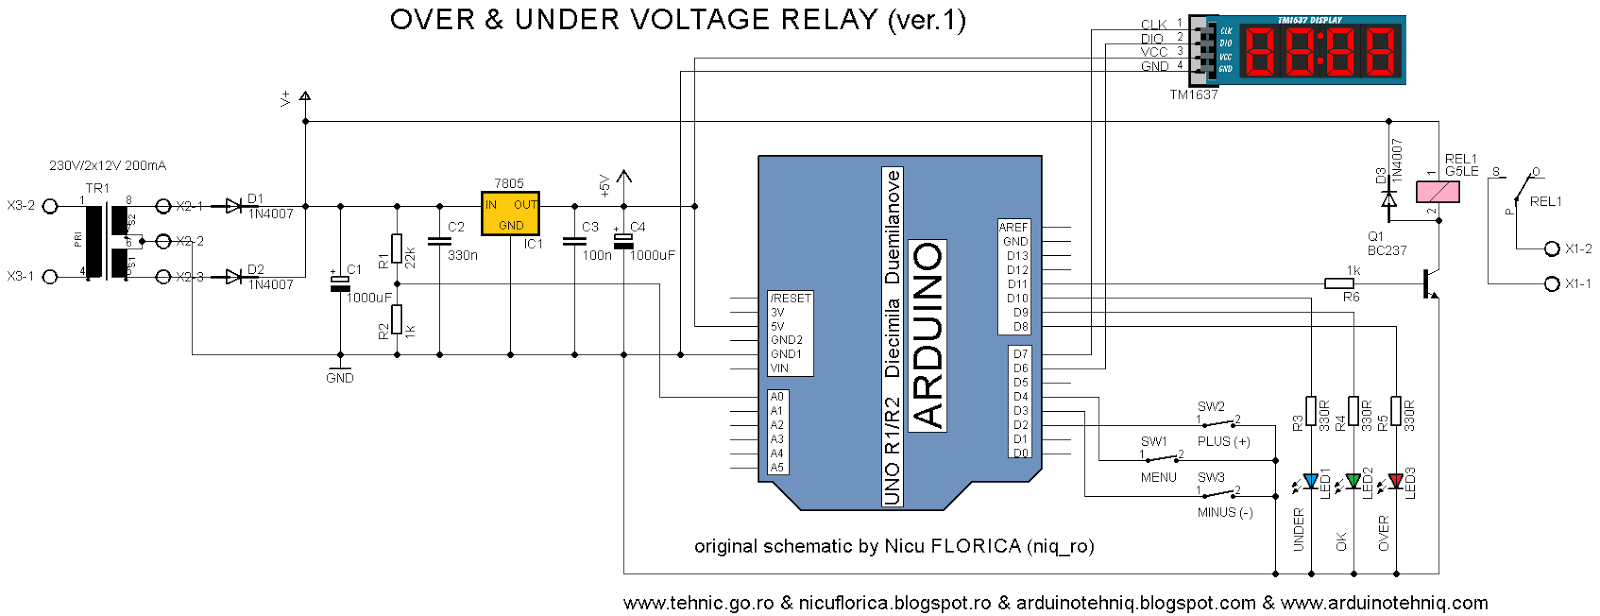 Arduino tehniq under overvoltage relay for ac main power supply after power the module arduino read and calculate vltage for ac main power supply and if is ok coil relay is powered asfbconference2016 Gallery